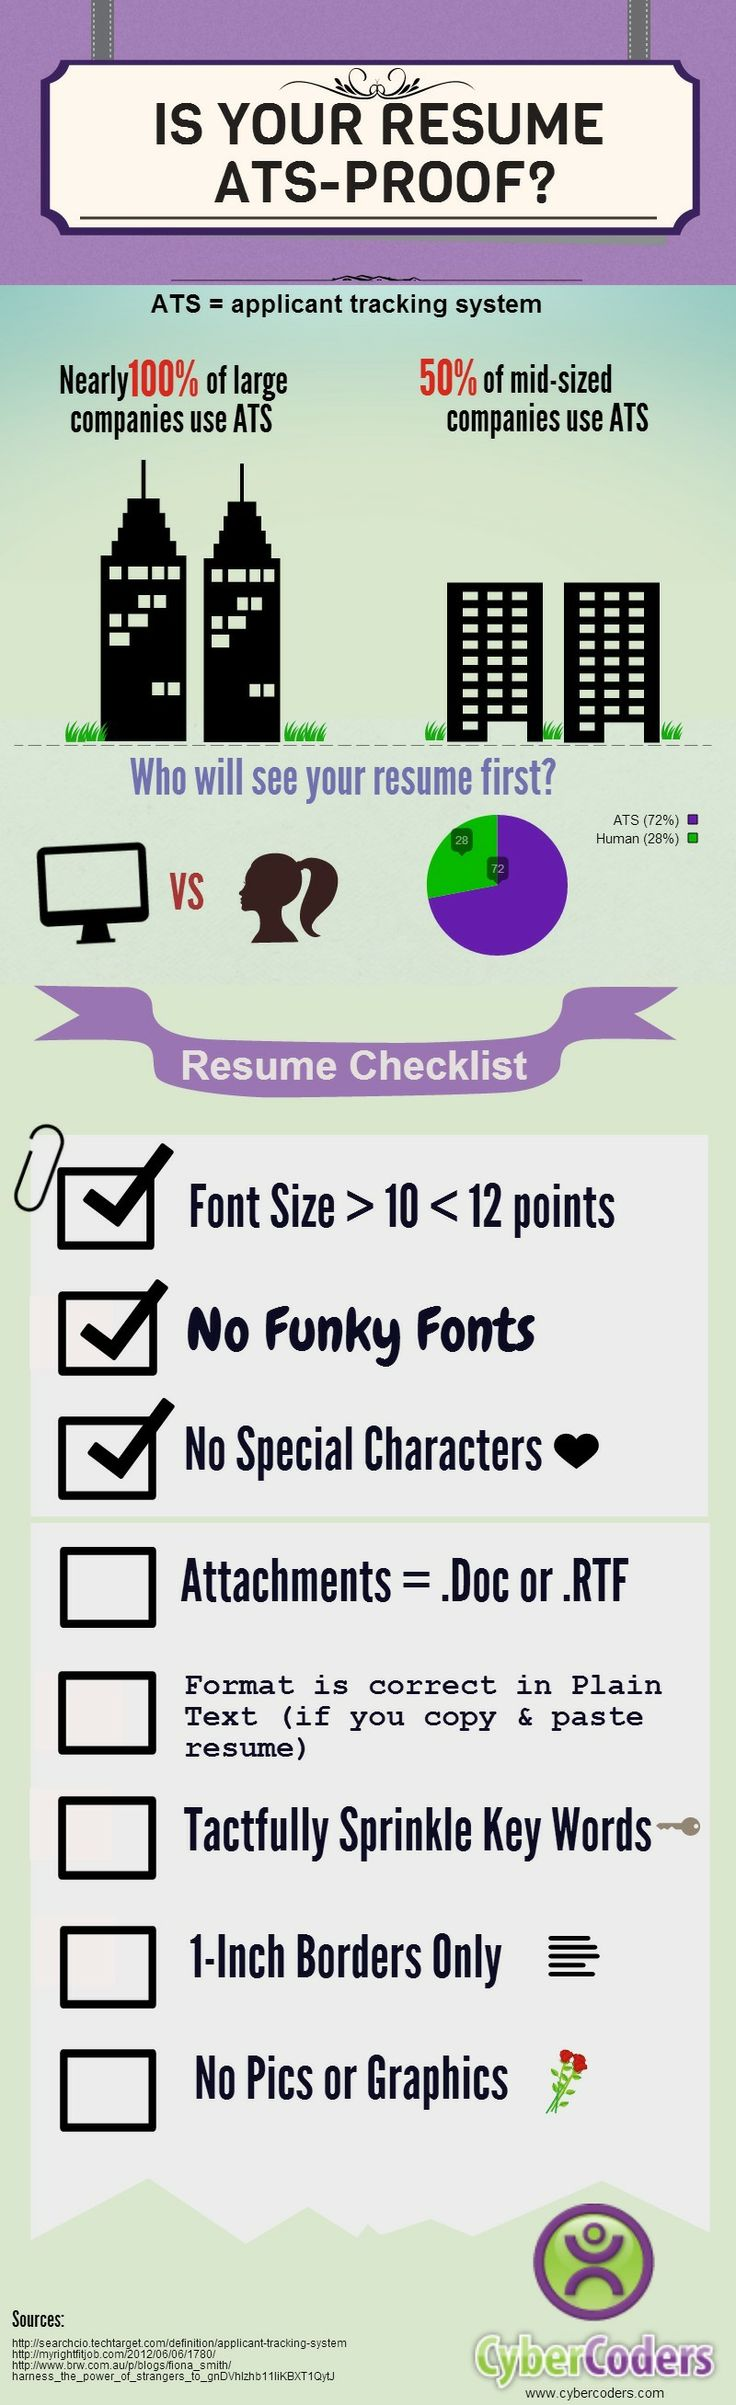 infographic : CyberCoders Infographic: Is Your Resume ATS-Proof? | CyberCoders Insights…